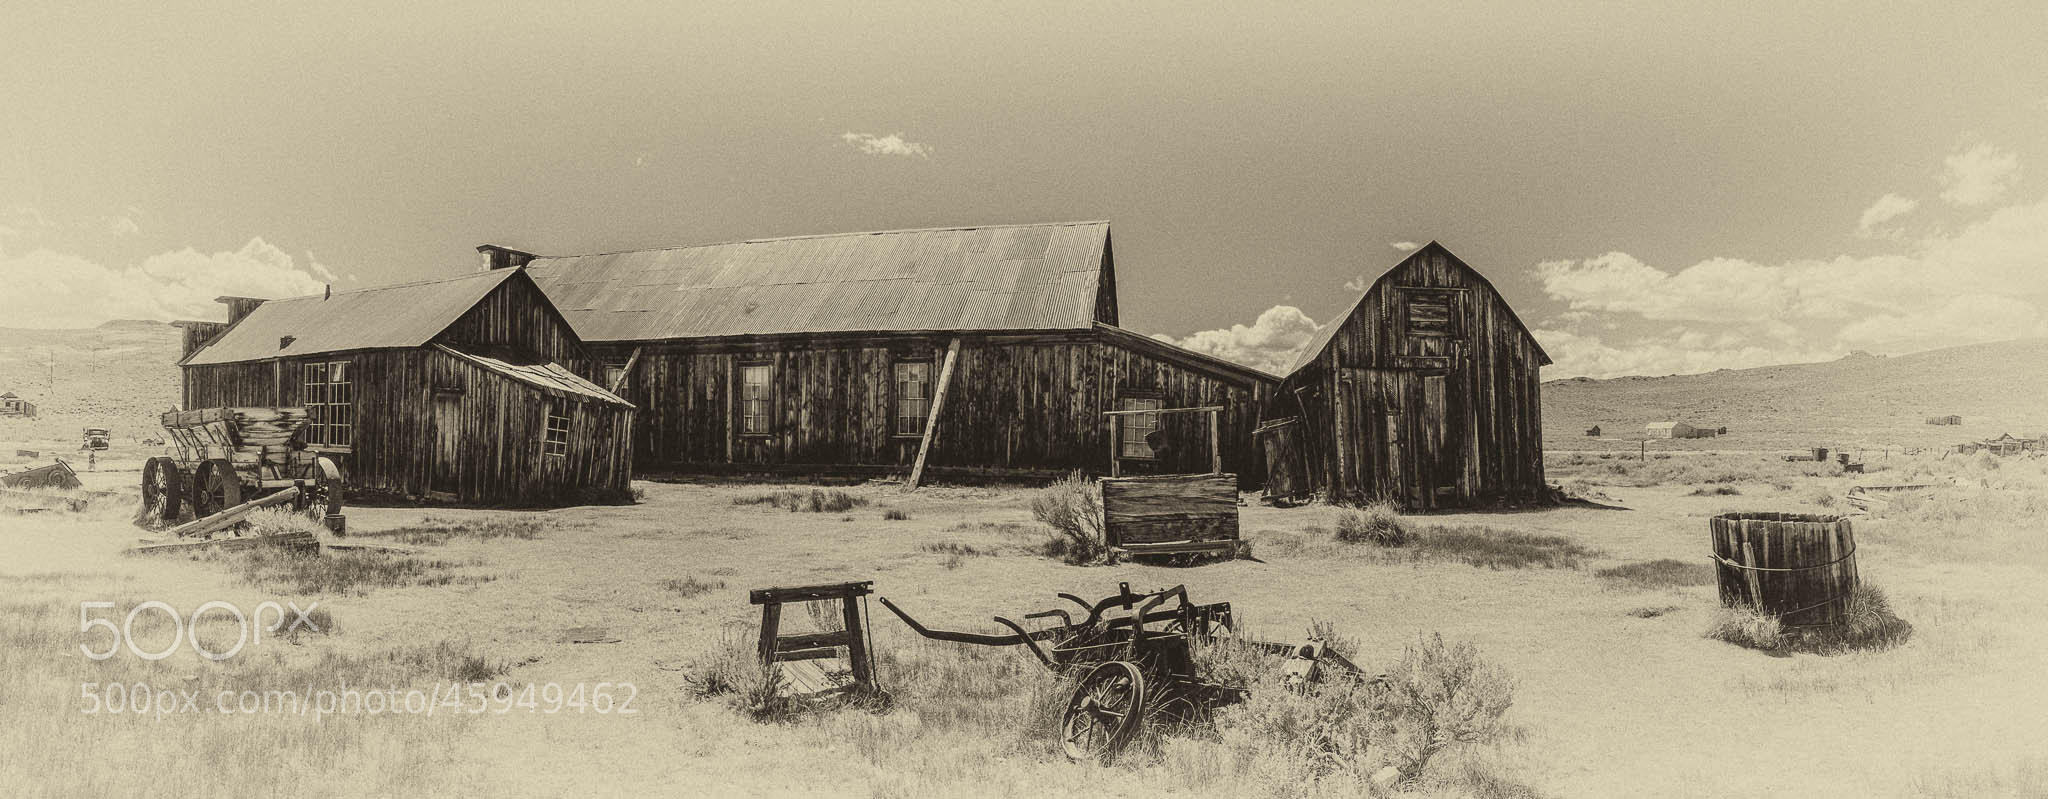 Photograph Old Barn in Bodie, CA by Jeremy Schoen on 500px